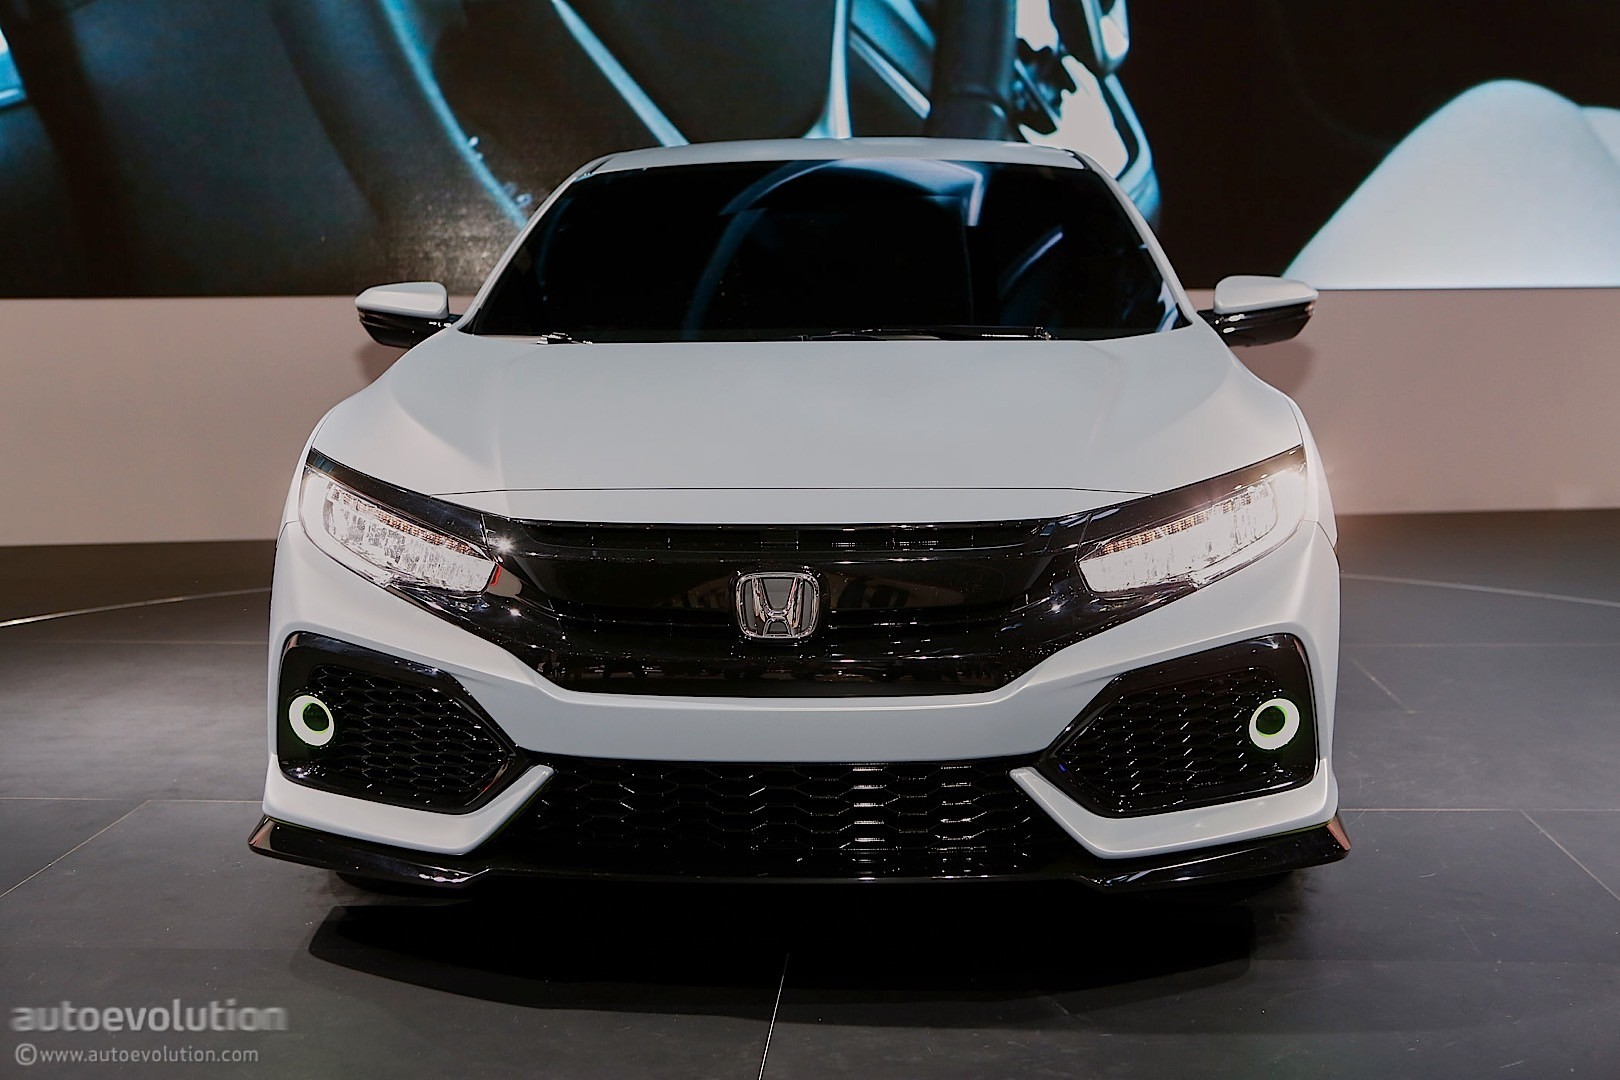 Honda Civic Hatchback Coming to New York, Civic Si and New Type R in 2017 - autoevolution